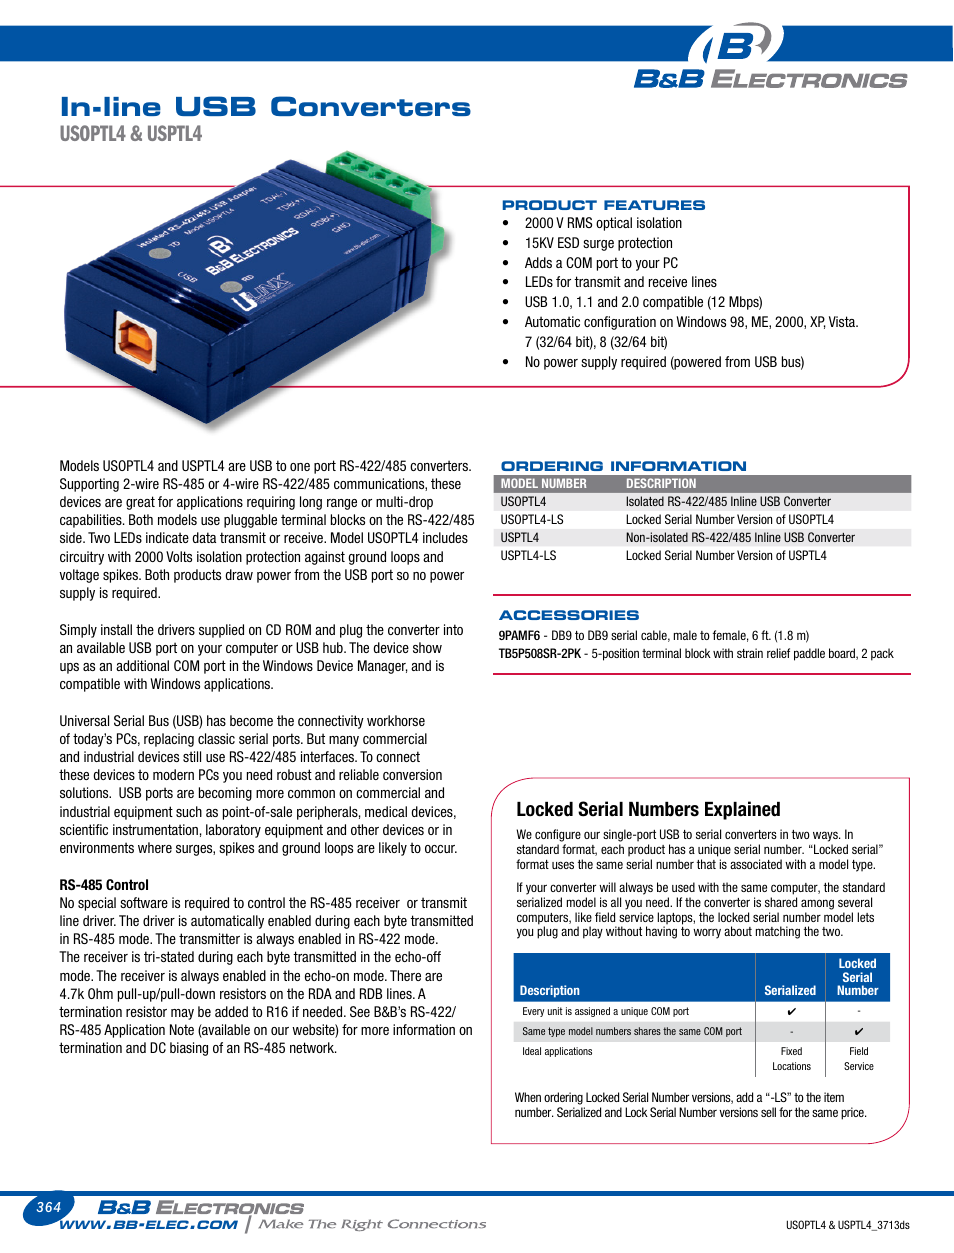 Bb Electronics Usptl4 Ls Datasheet User Manual 2 Pages Usb To Serial Surge And Optical Isolation Converter Rs422 485